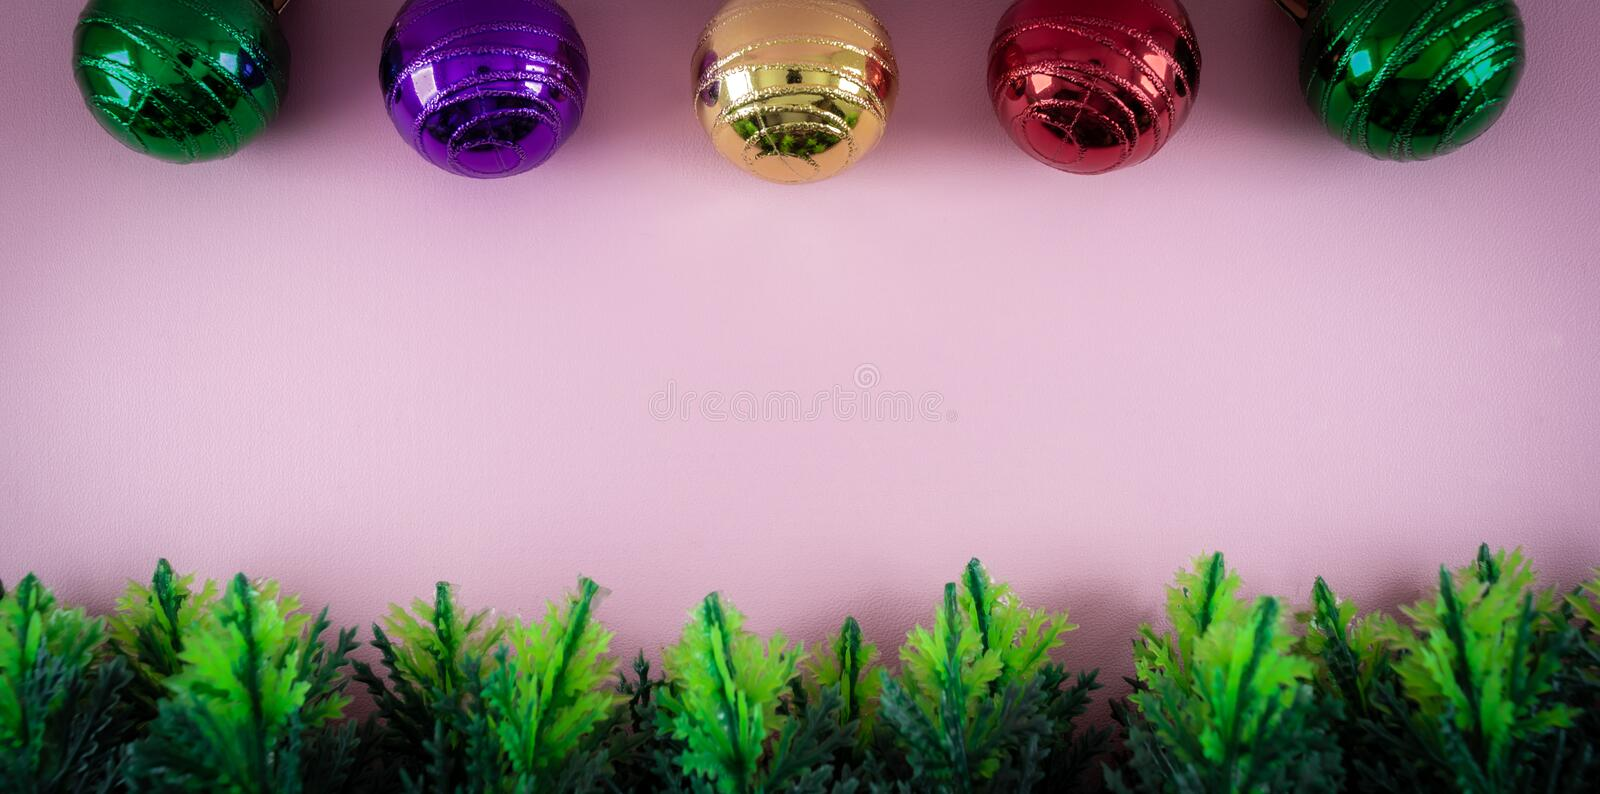 Christmas theme border or frame. made from plastic cypress leaves and colorful ornament in pink background. Christmas, theme, border, pink, background royalty free stock images